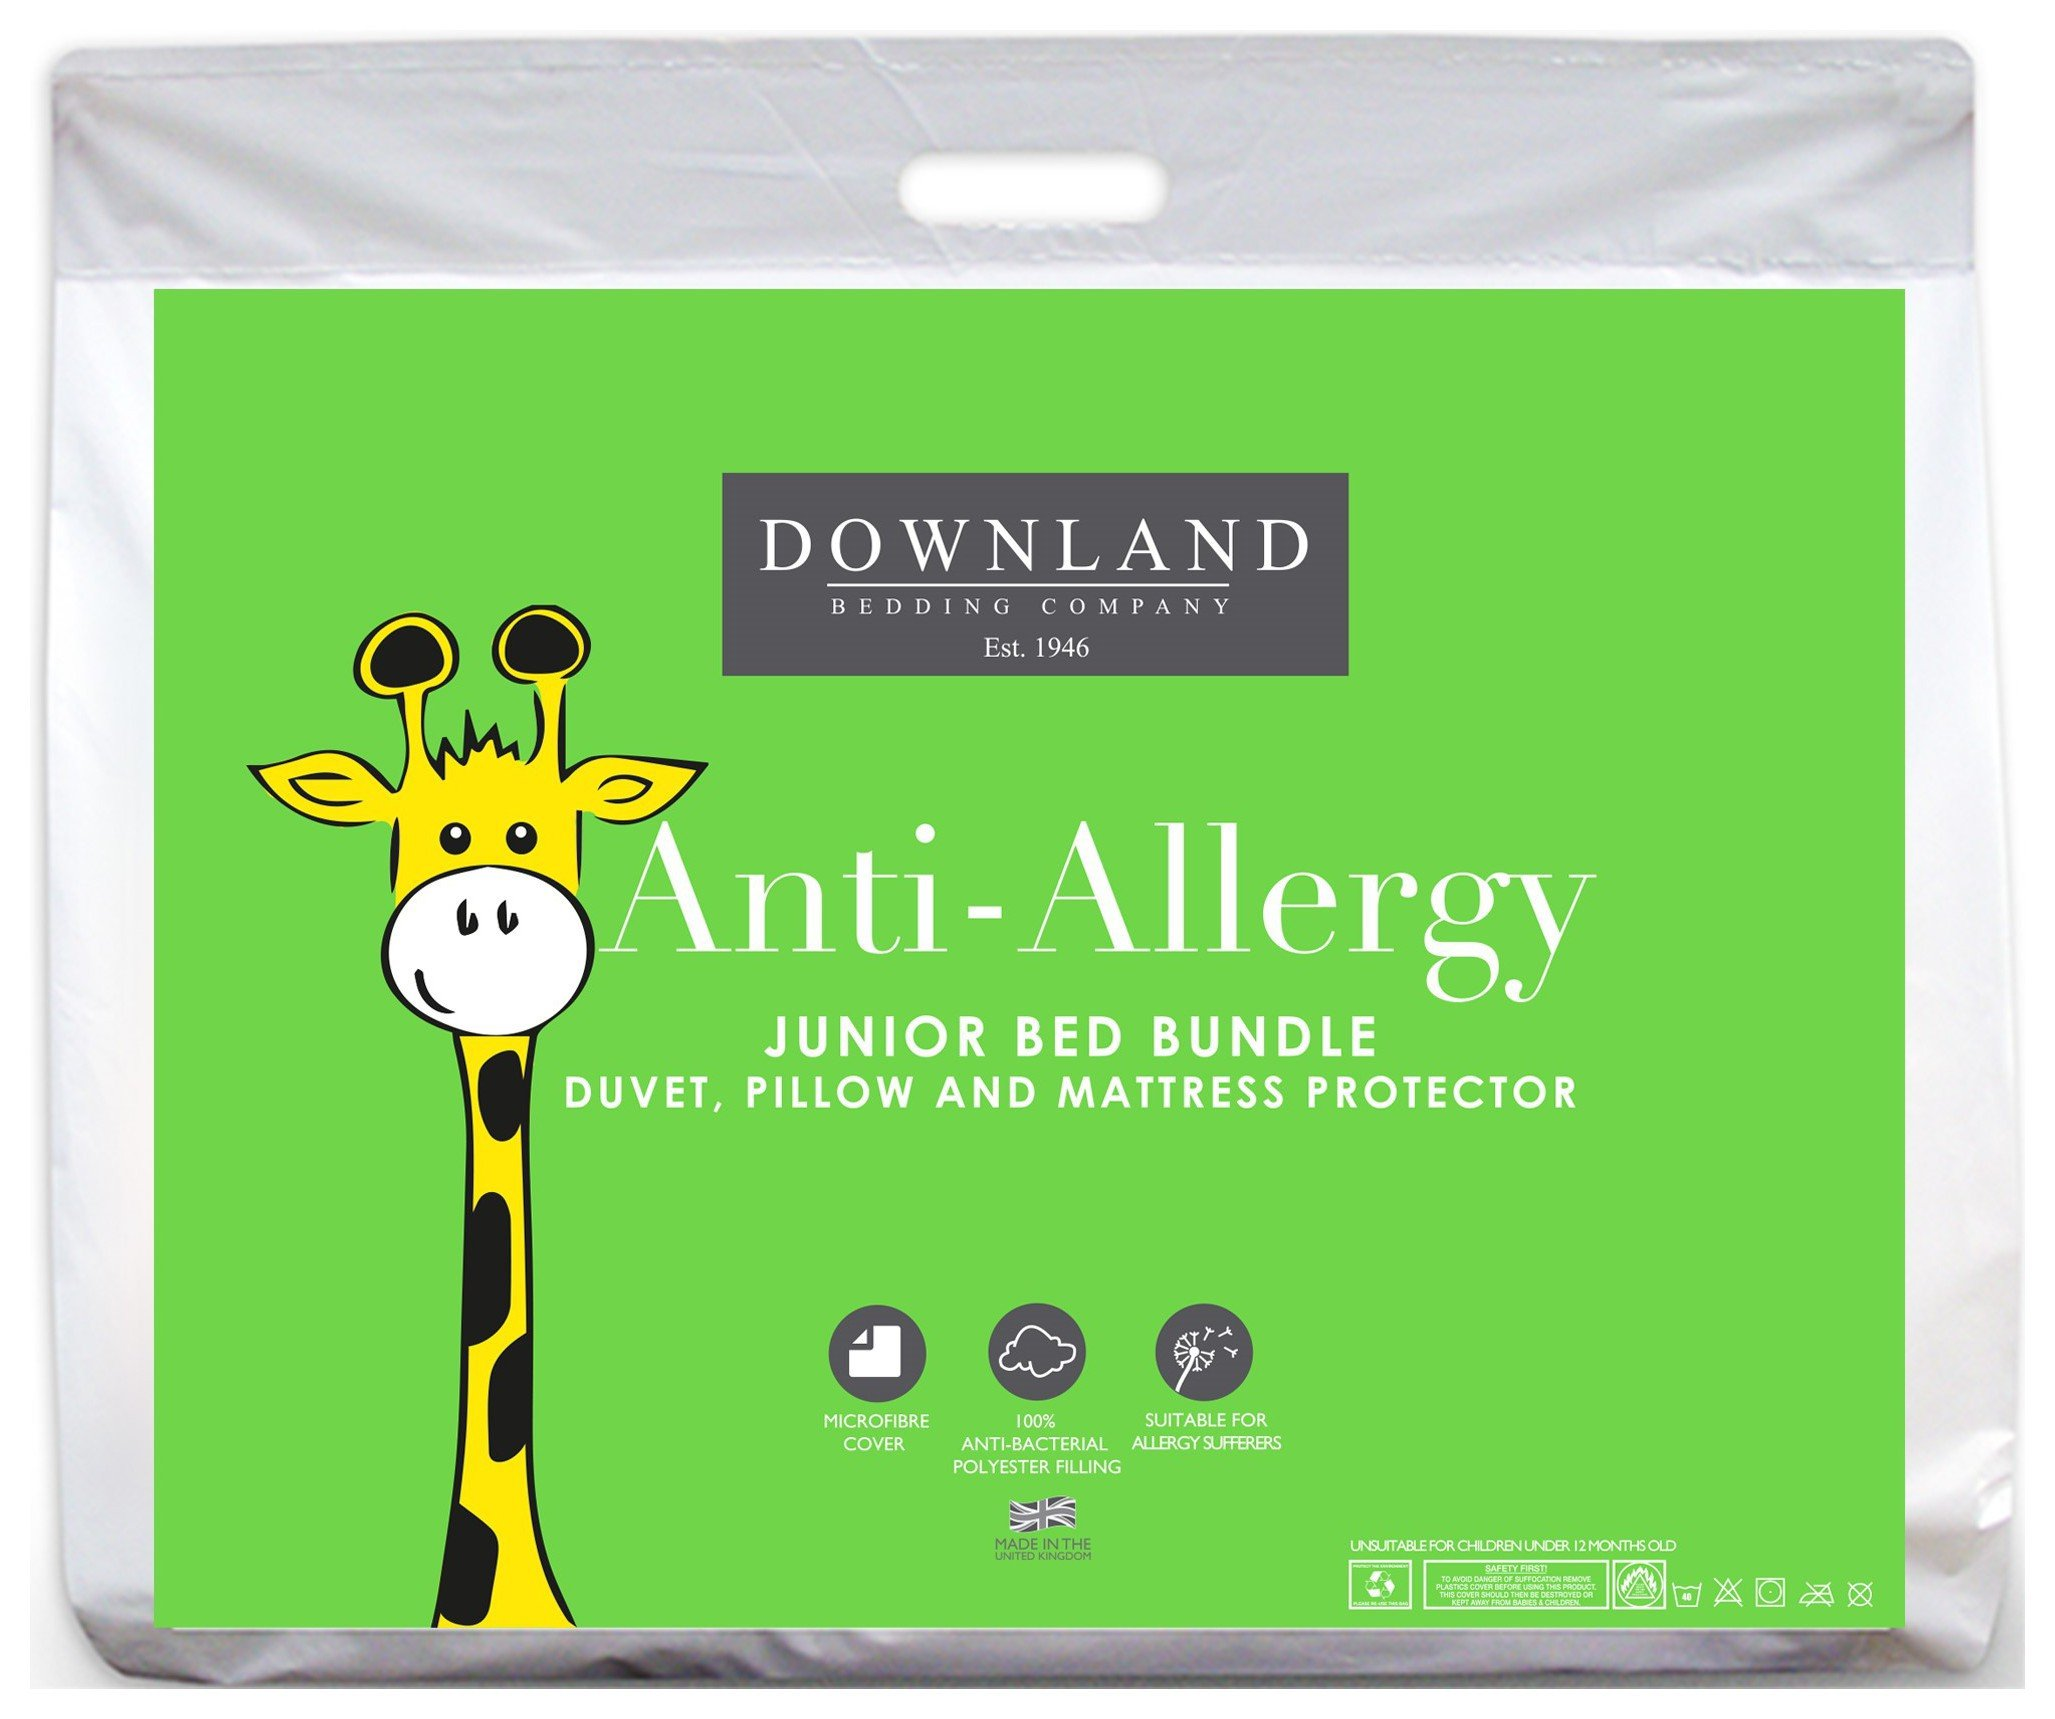 Downland Toddler Microfibre Anti-Allergy Bedding Bundle